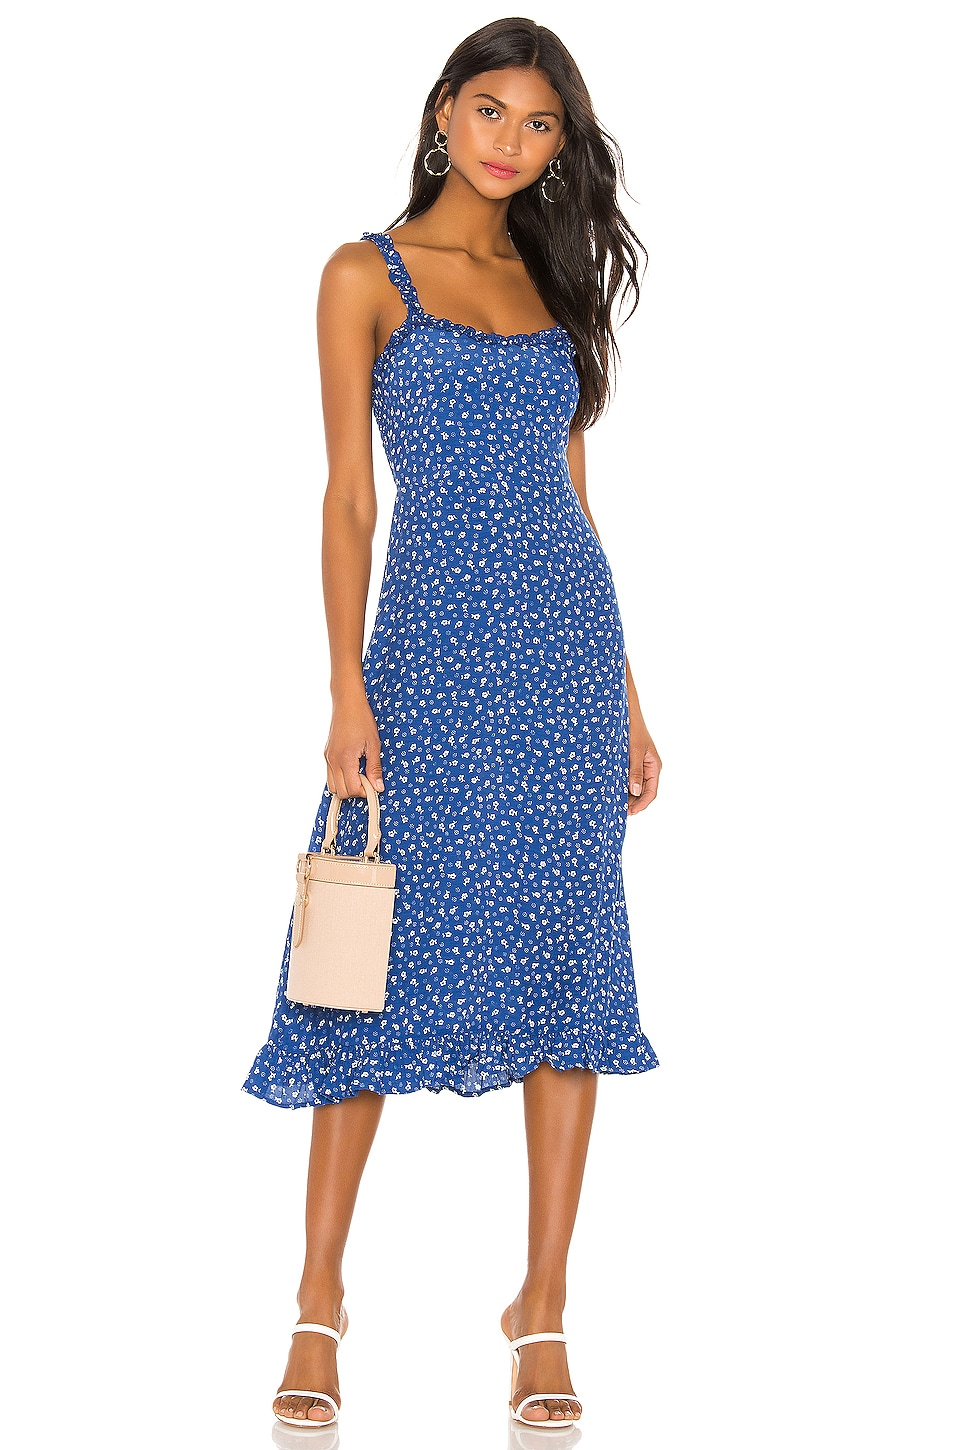 FAITHFULL THE BRAND Noemie Midi Dress in Blue Monette Floral